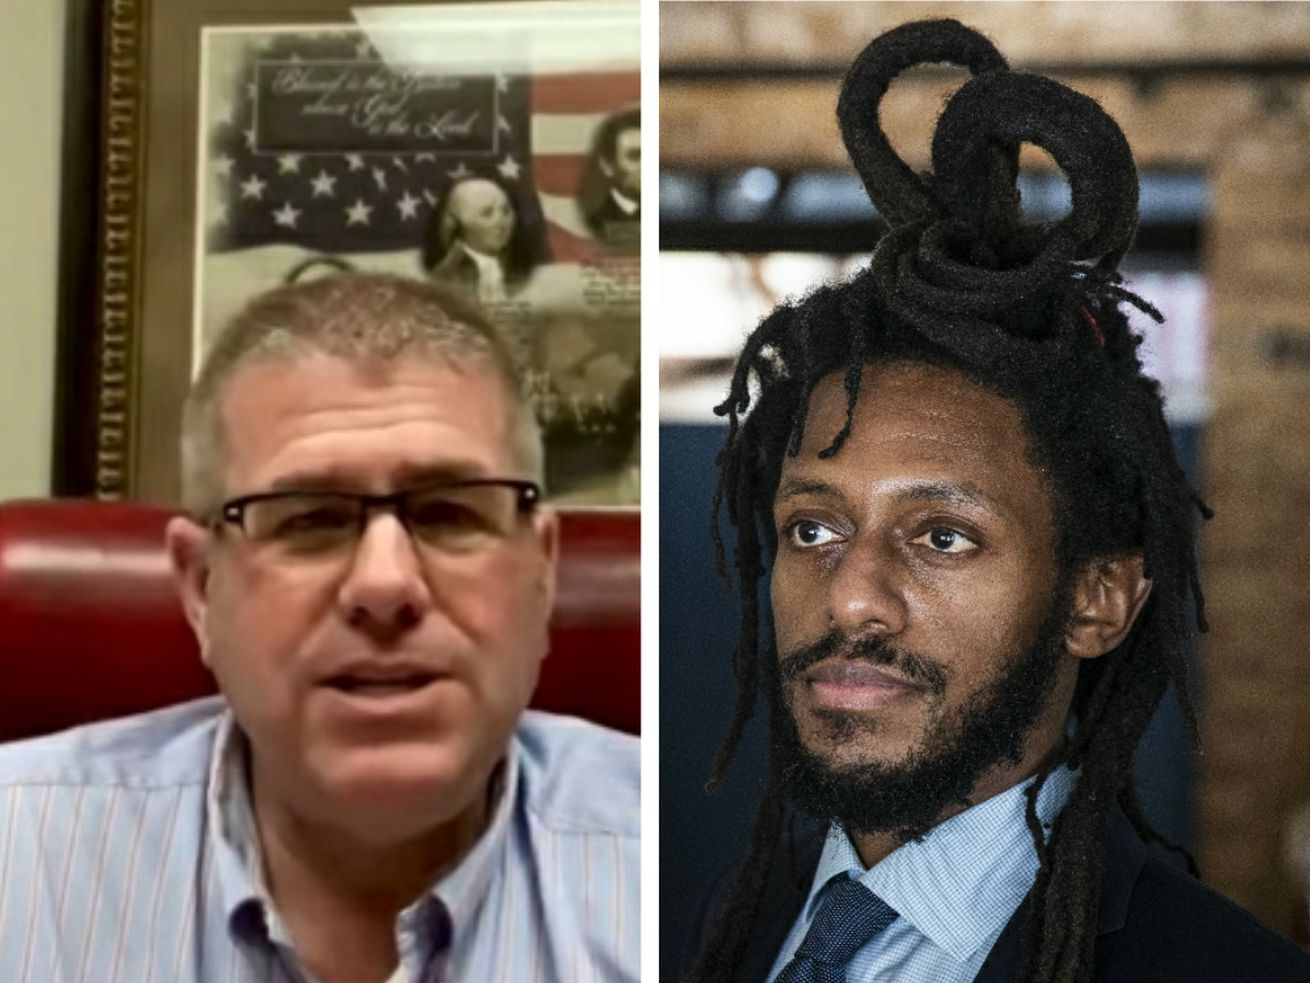 State Sen. Darren Bailey, R-Xenia, left, earlier this month; State Sen. Mike Simmons, D-Chicago, right, in February.